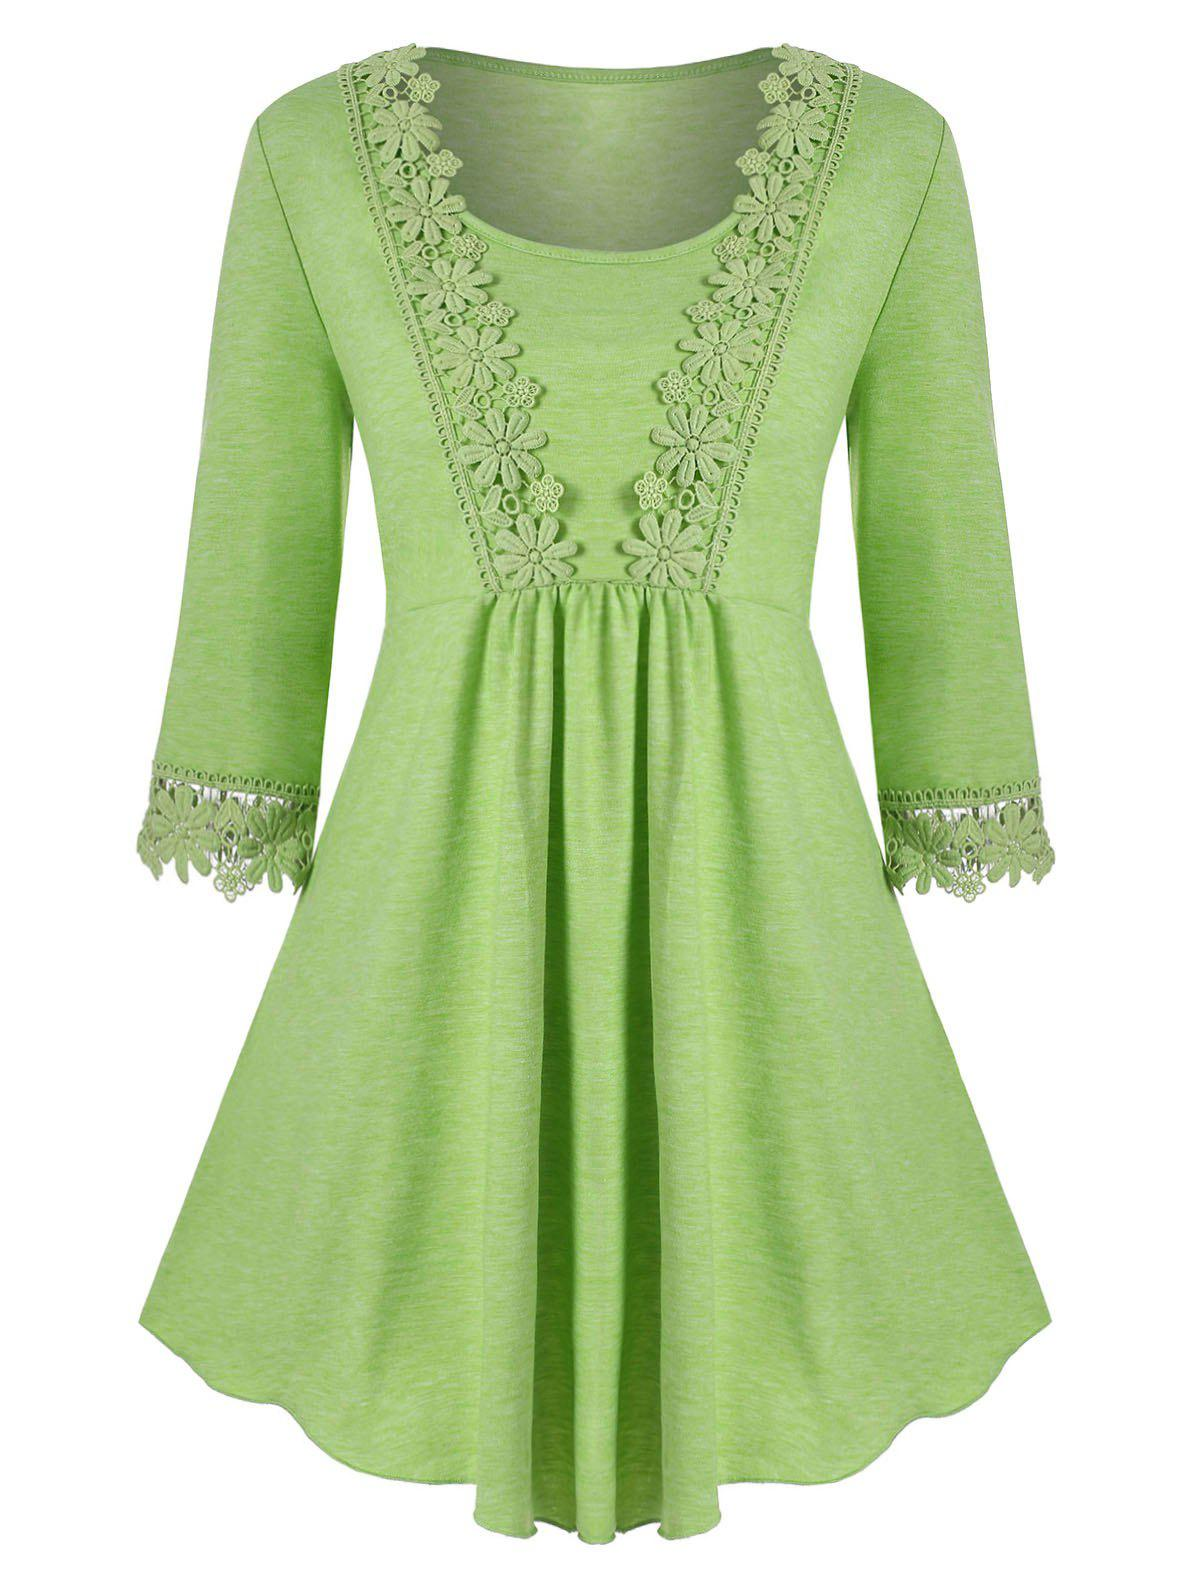 Scoop Laced Trim Plus Size Tunic Top - GREEN 5X